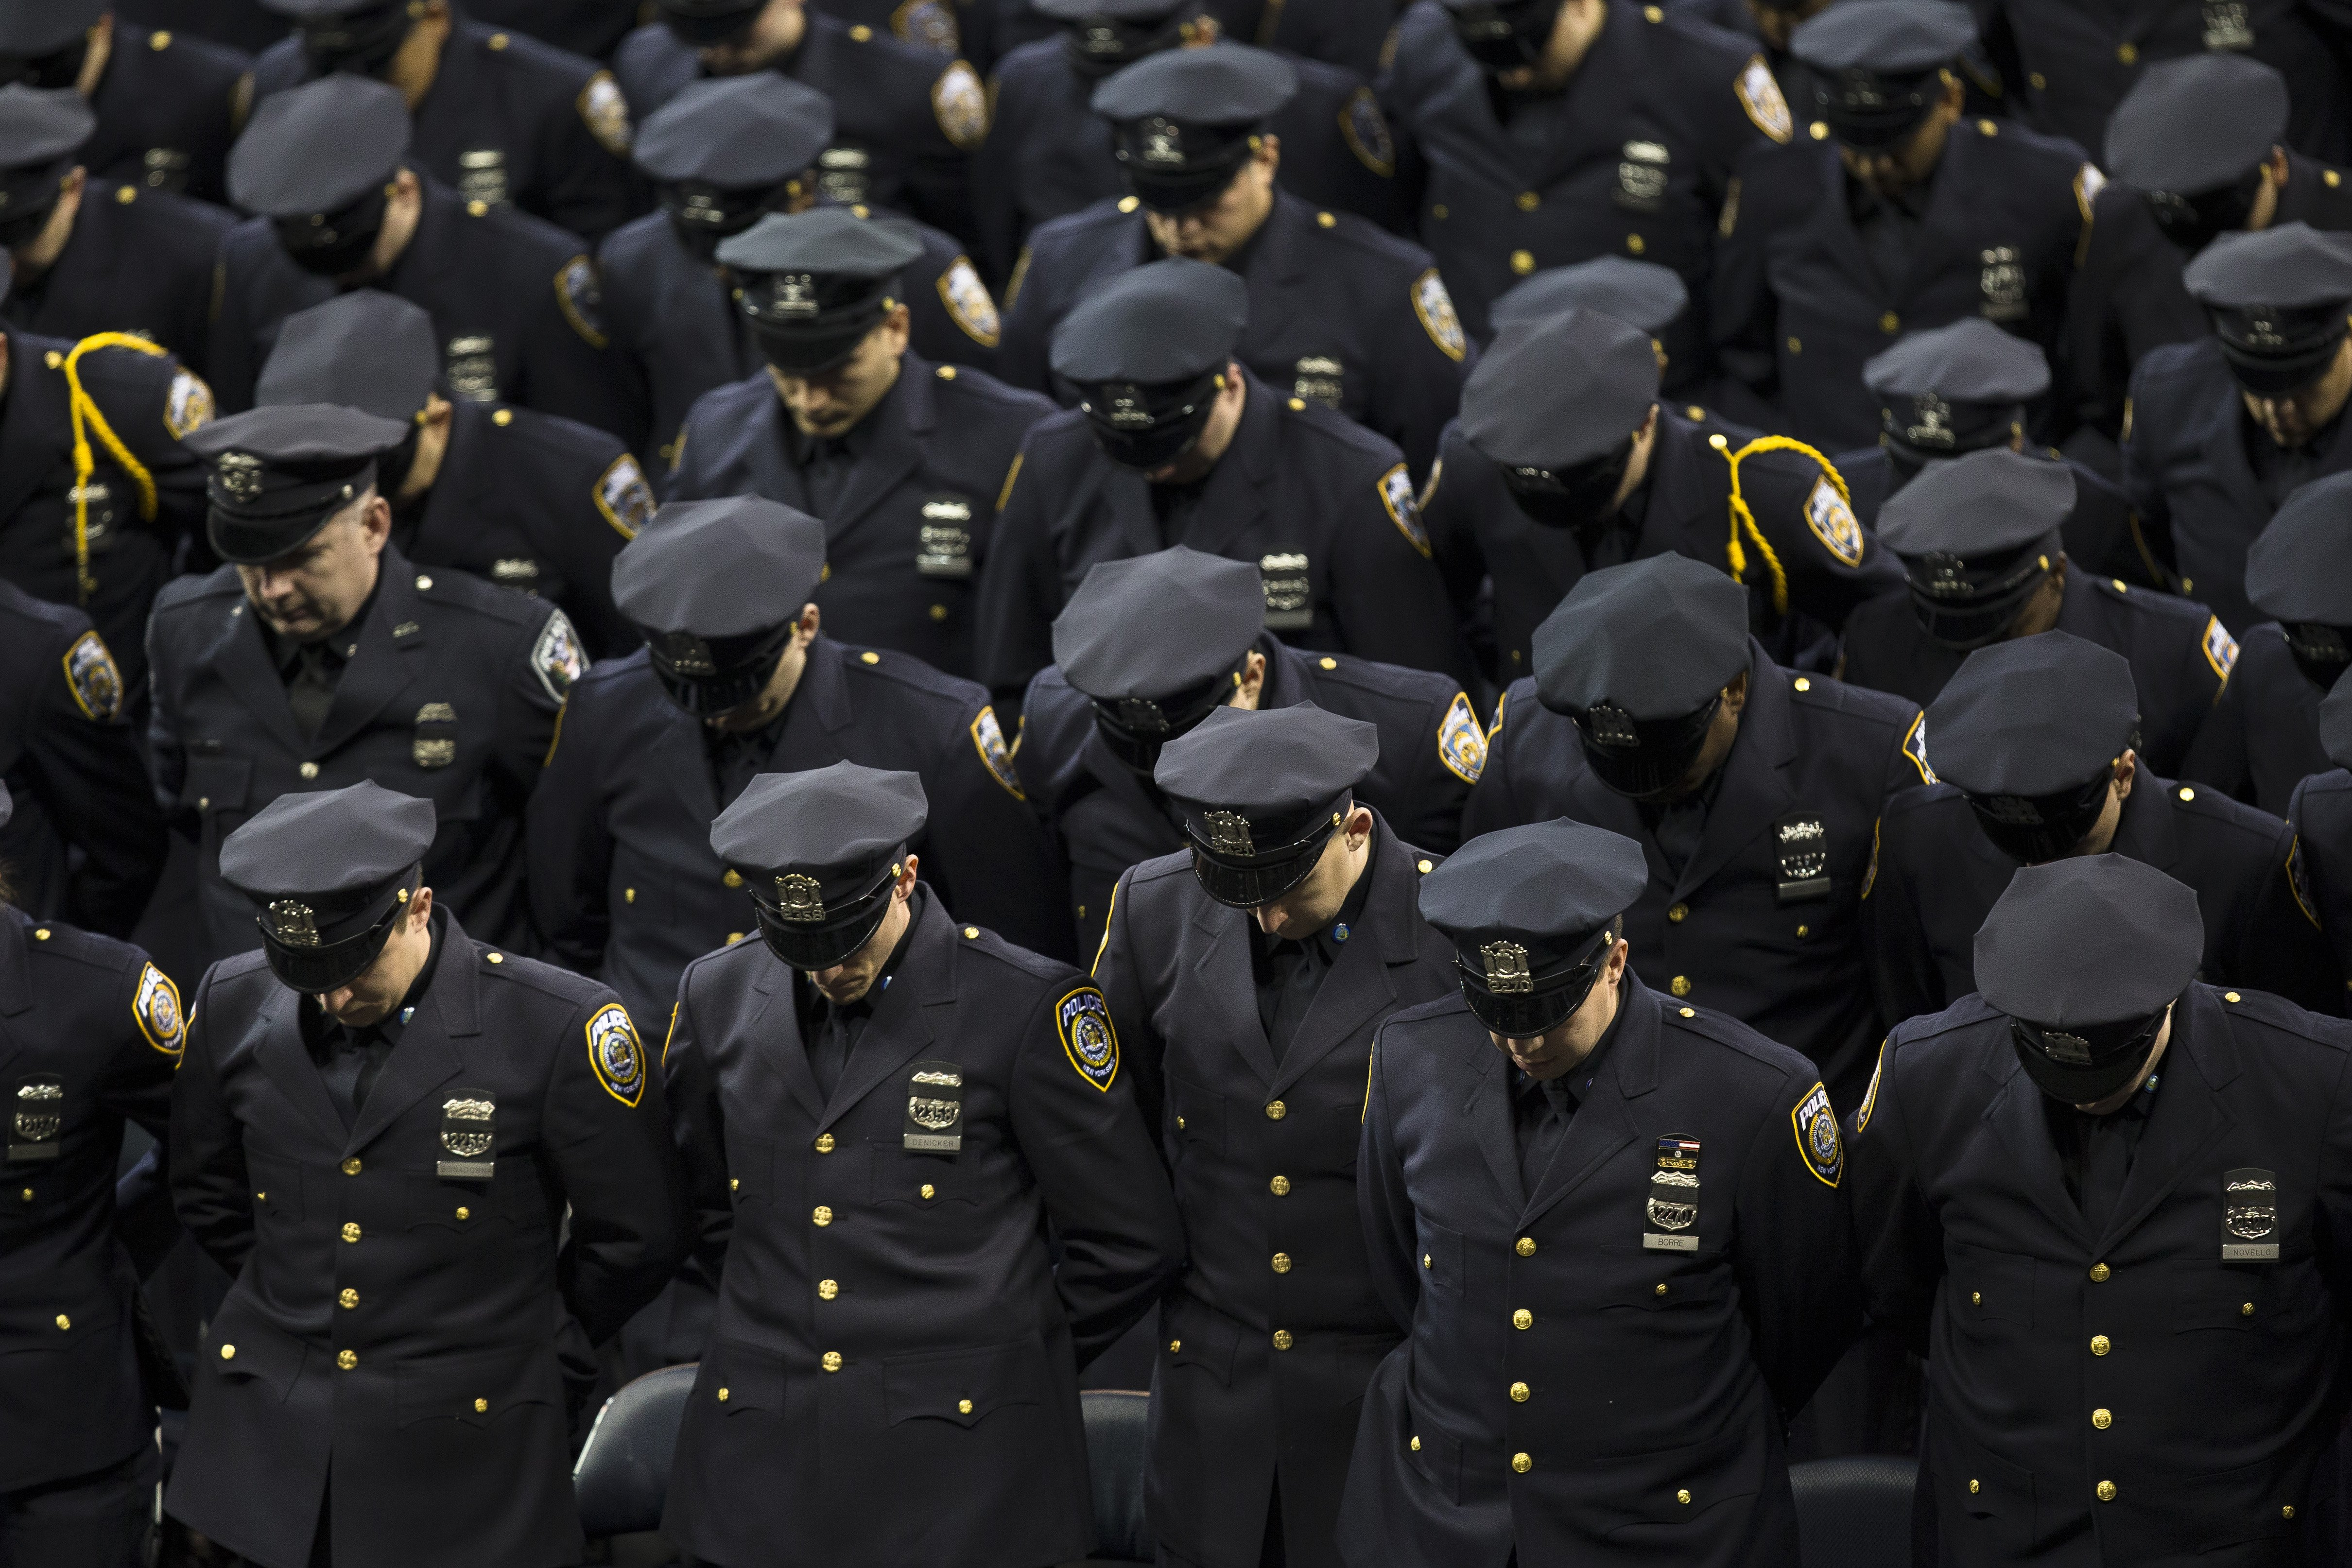 New recruits bow their heads for a moment of silence during a New York Police Academy graduation ceremony at Madison Square Garden in New York City on Dec. 29, 2014.